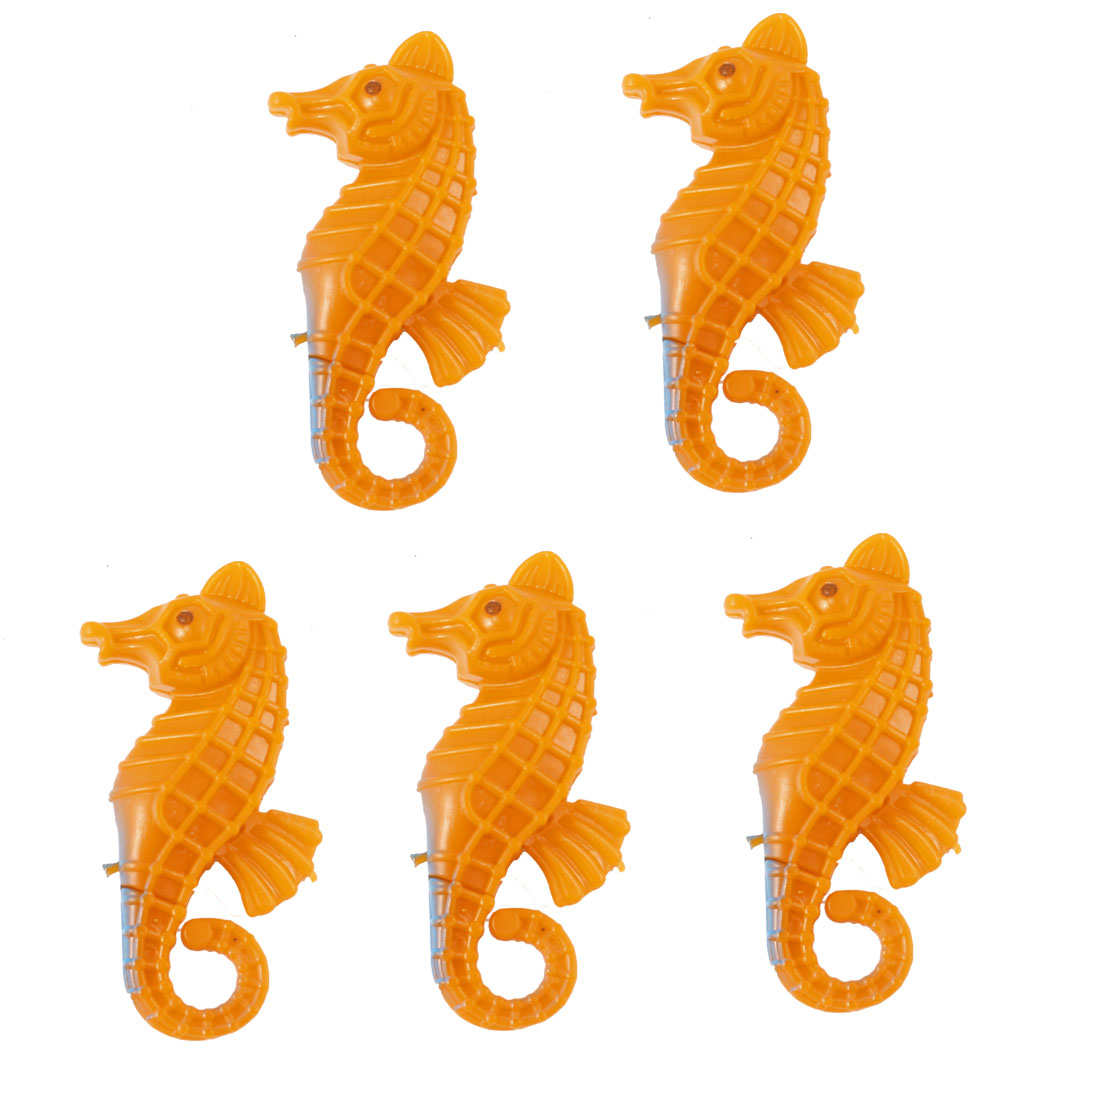 5pcs Fish Bowl Orange Plastic Emulational Movable Seahorse Decor